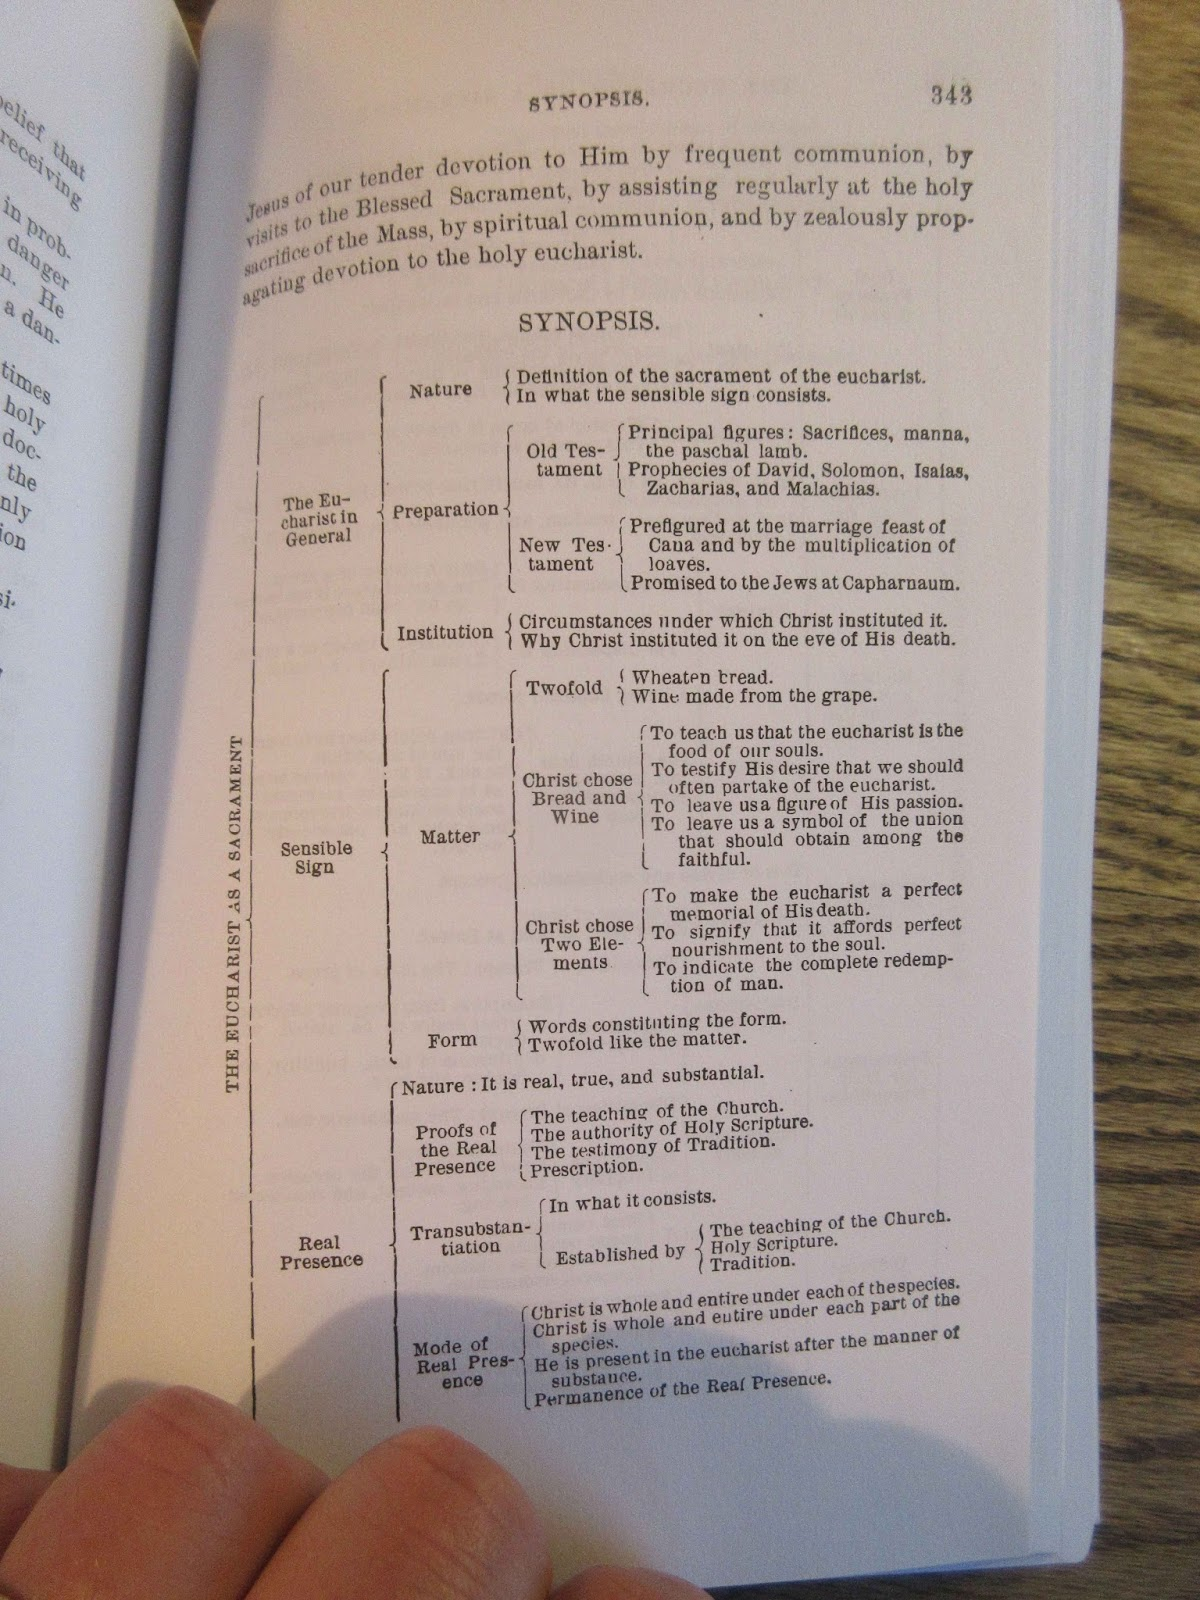 St Thomas Aquinas Papers From The 1924 Summer School Of Catholic Studies At Cambridge Ed Cuthbert Lattey Xii 311 Pp 1995 Available Amazon